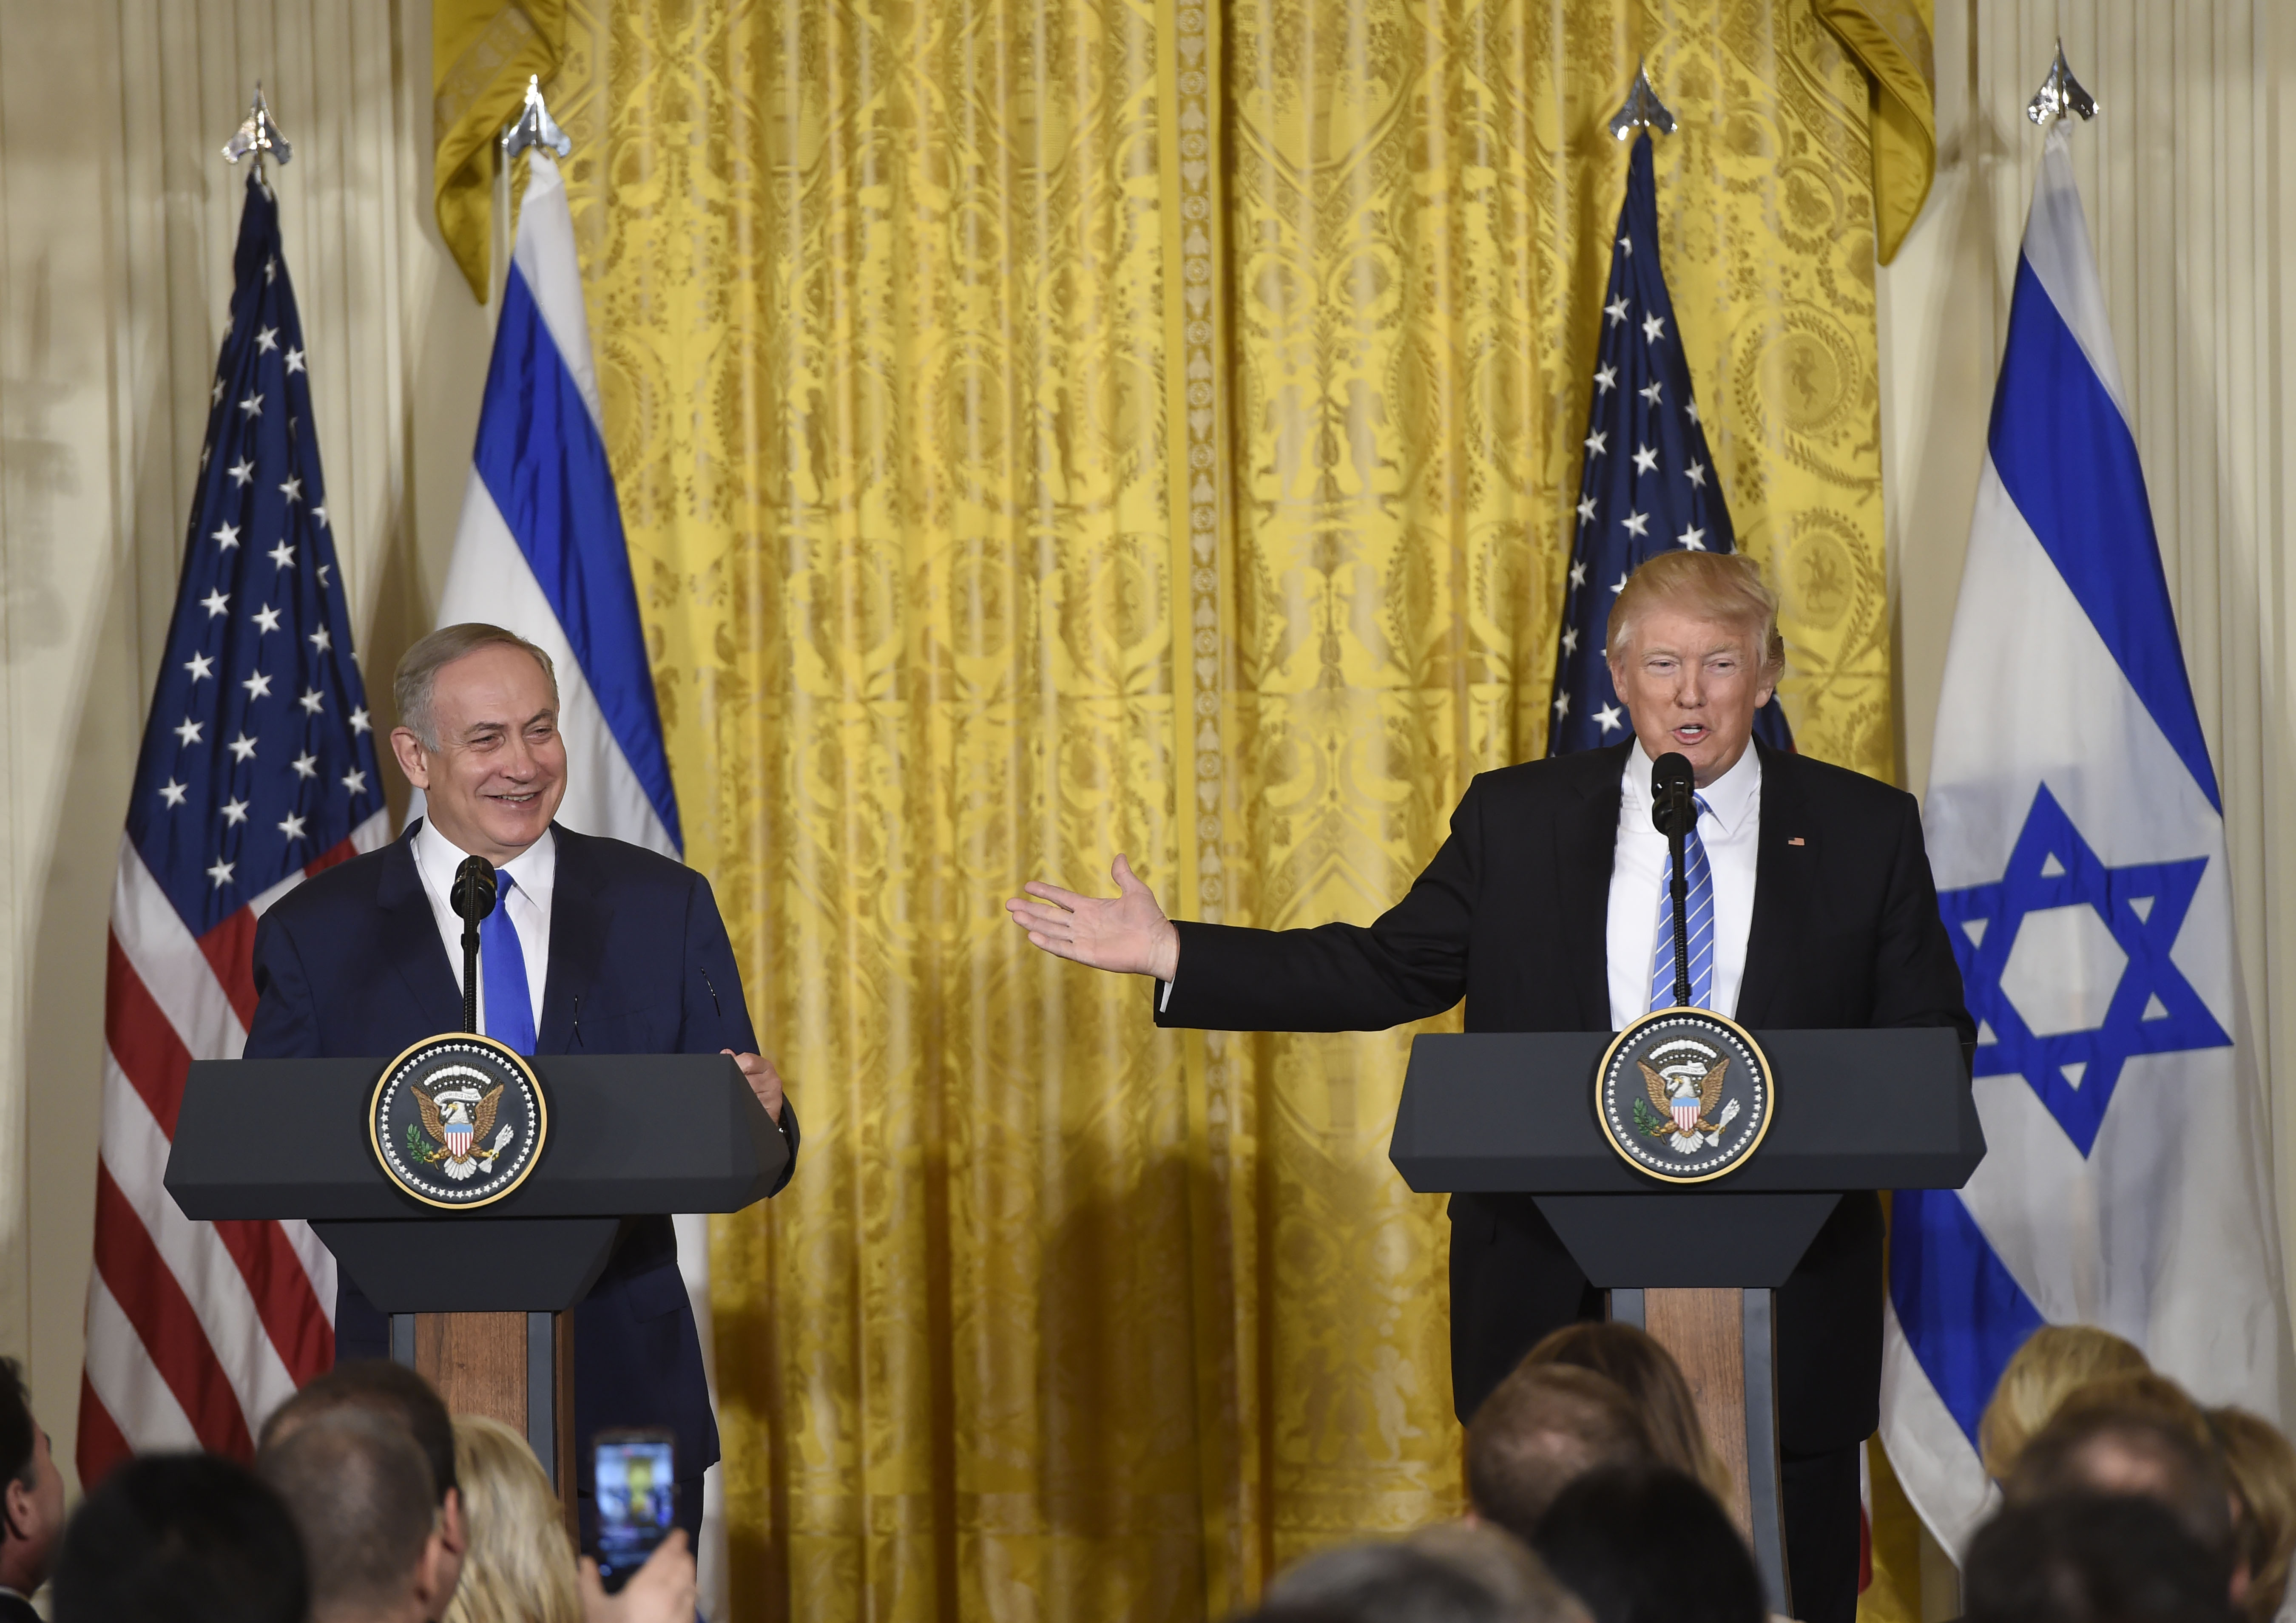 President Donald Trump and Israeli Prime Minister Benjamin Netanyahu hold a joint press conference in the East Room of the White House in Washington, D.C., on Feb. 15, 2017.